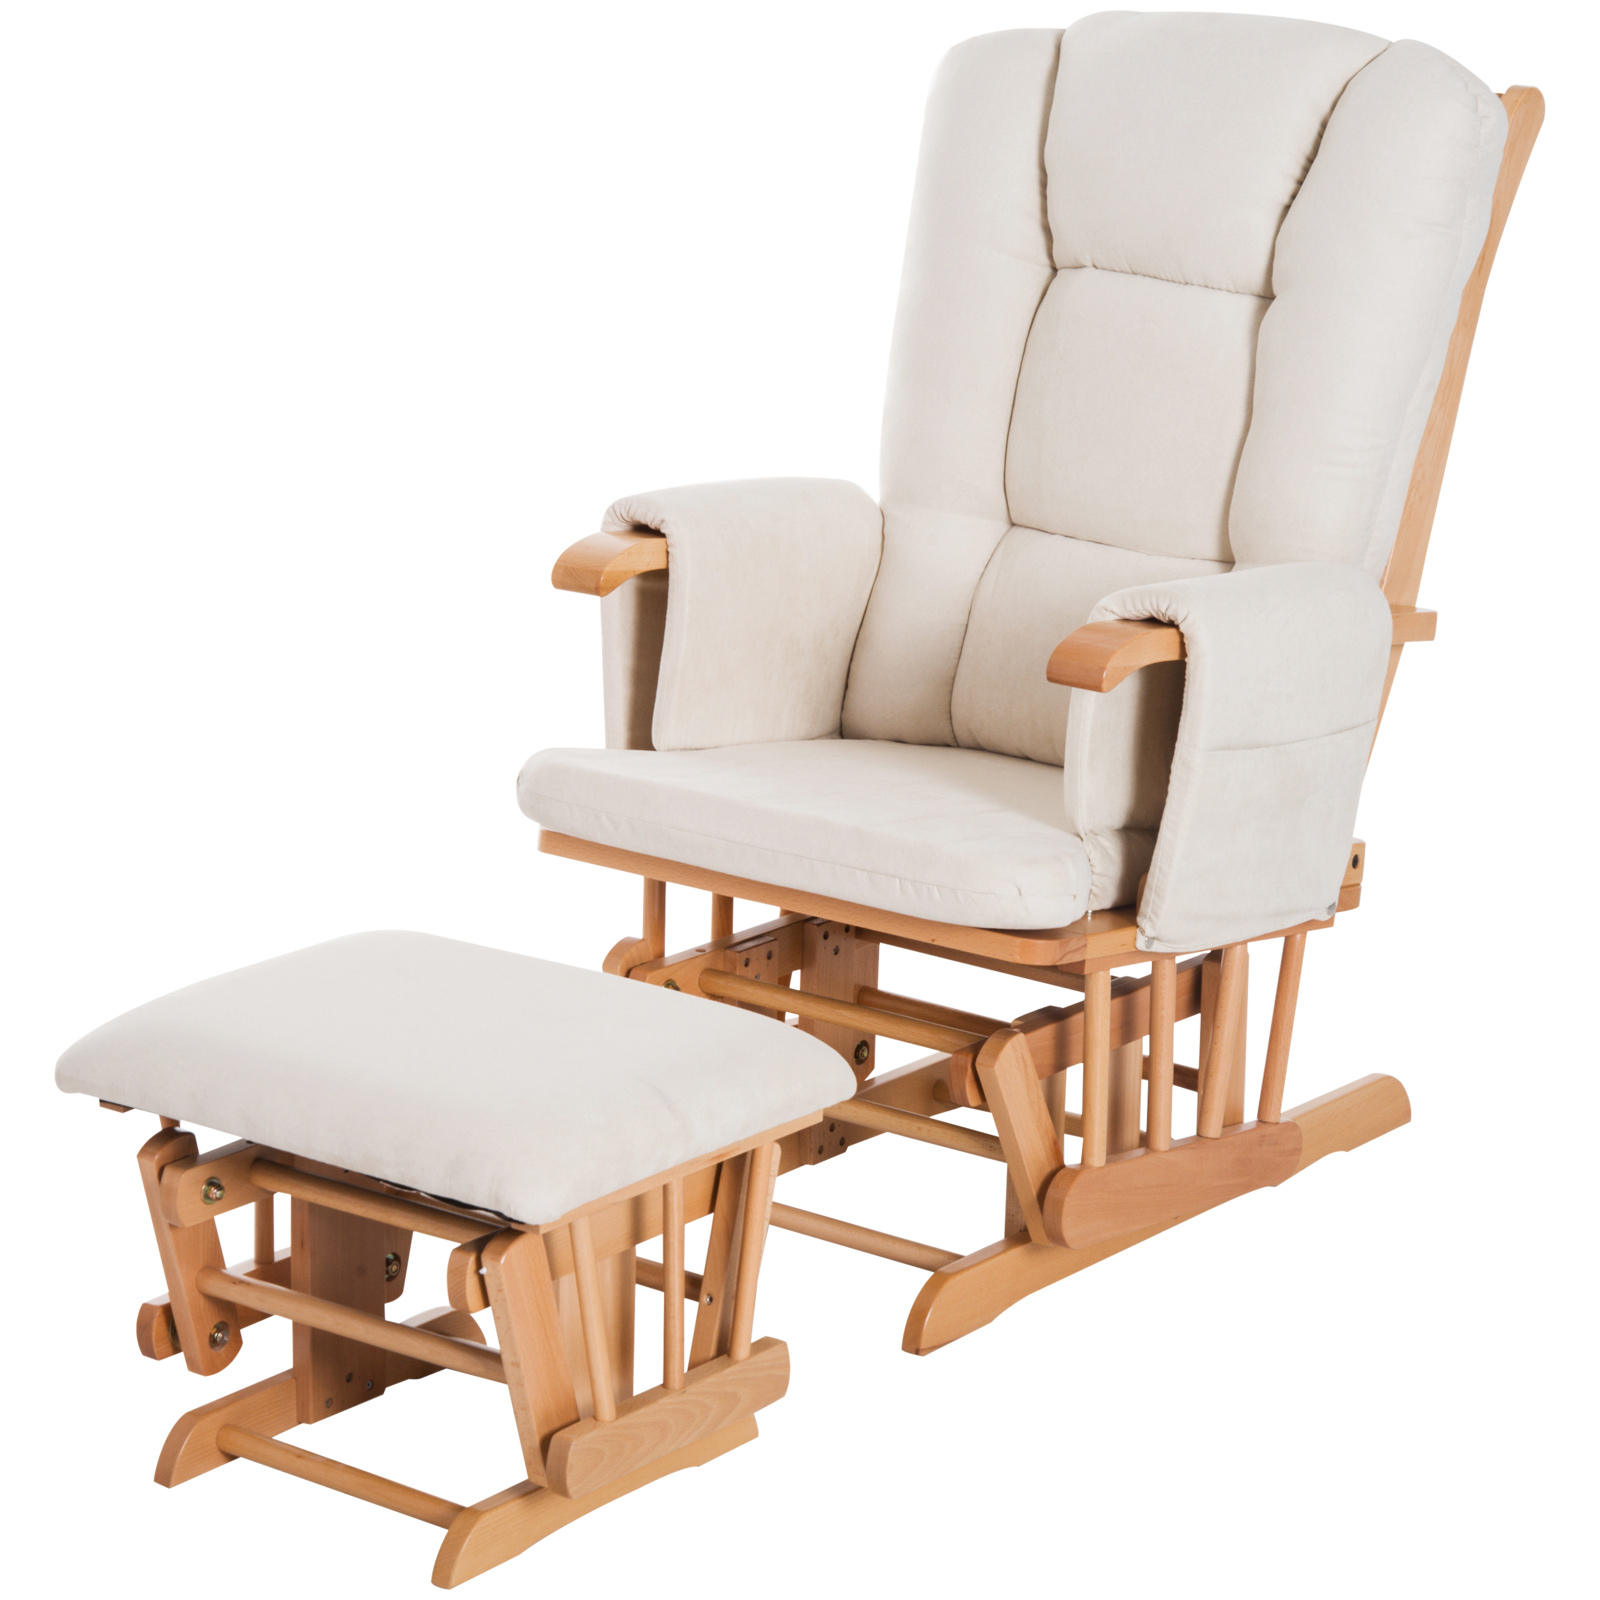 Homcom 2 Piece Glider Recliner Rocking Chair With Ottoman Set –  White/natural Wood Pertaining To Dark Oak Wooden Padded Faux Leather Rocking Chairs (#11 of 20)